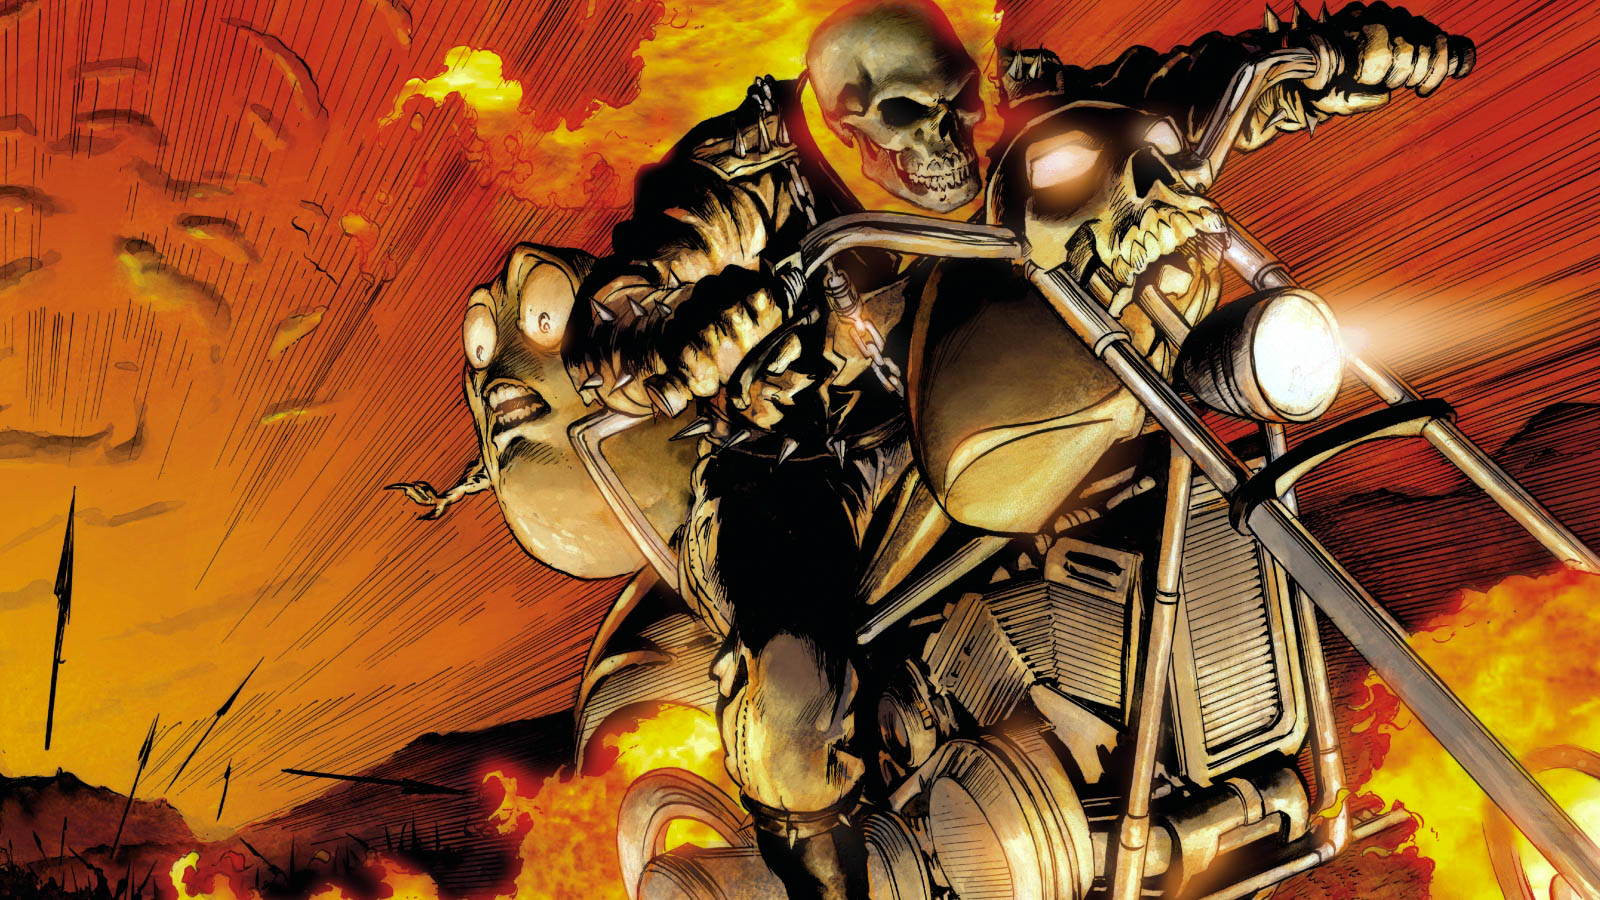 Wallpaper Hd Ghost Rider Ghost Rider Amazing Wallpaers Hd Pictures All Hd Wallpapers